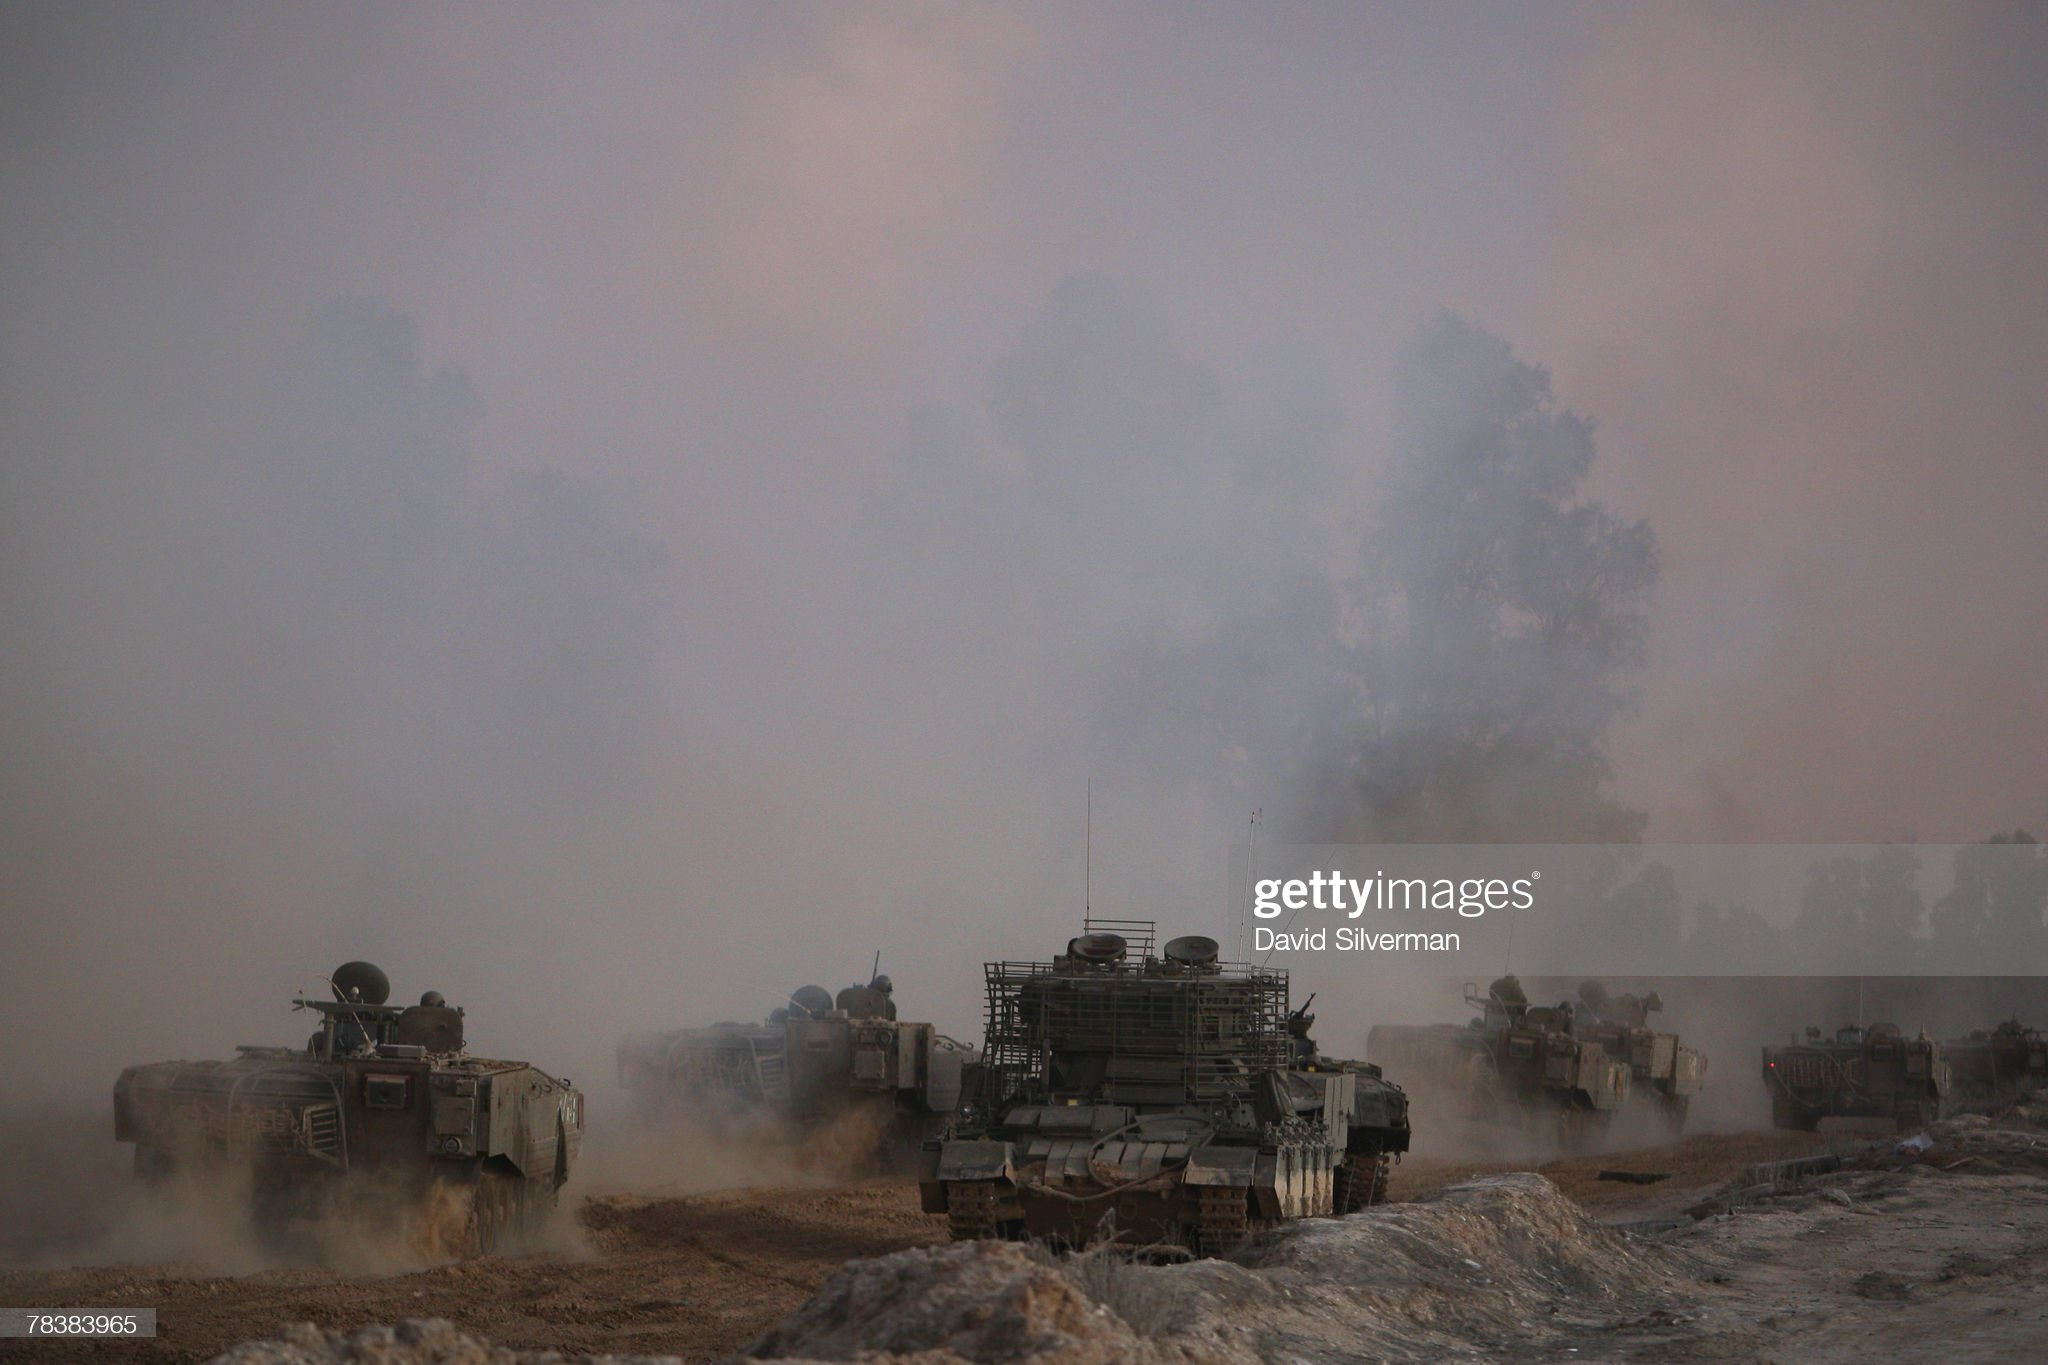 https://media.gettyimages.com/photos/column-of-israeli-armor-churns-up-dust-and-smoke-as-it-heads-for-base-picture-id78383965?s=2048x2048